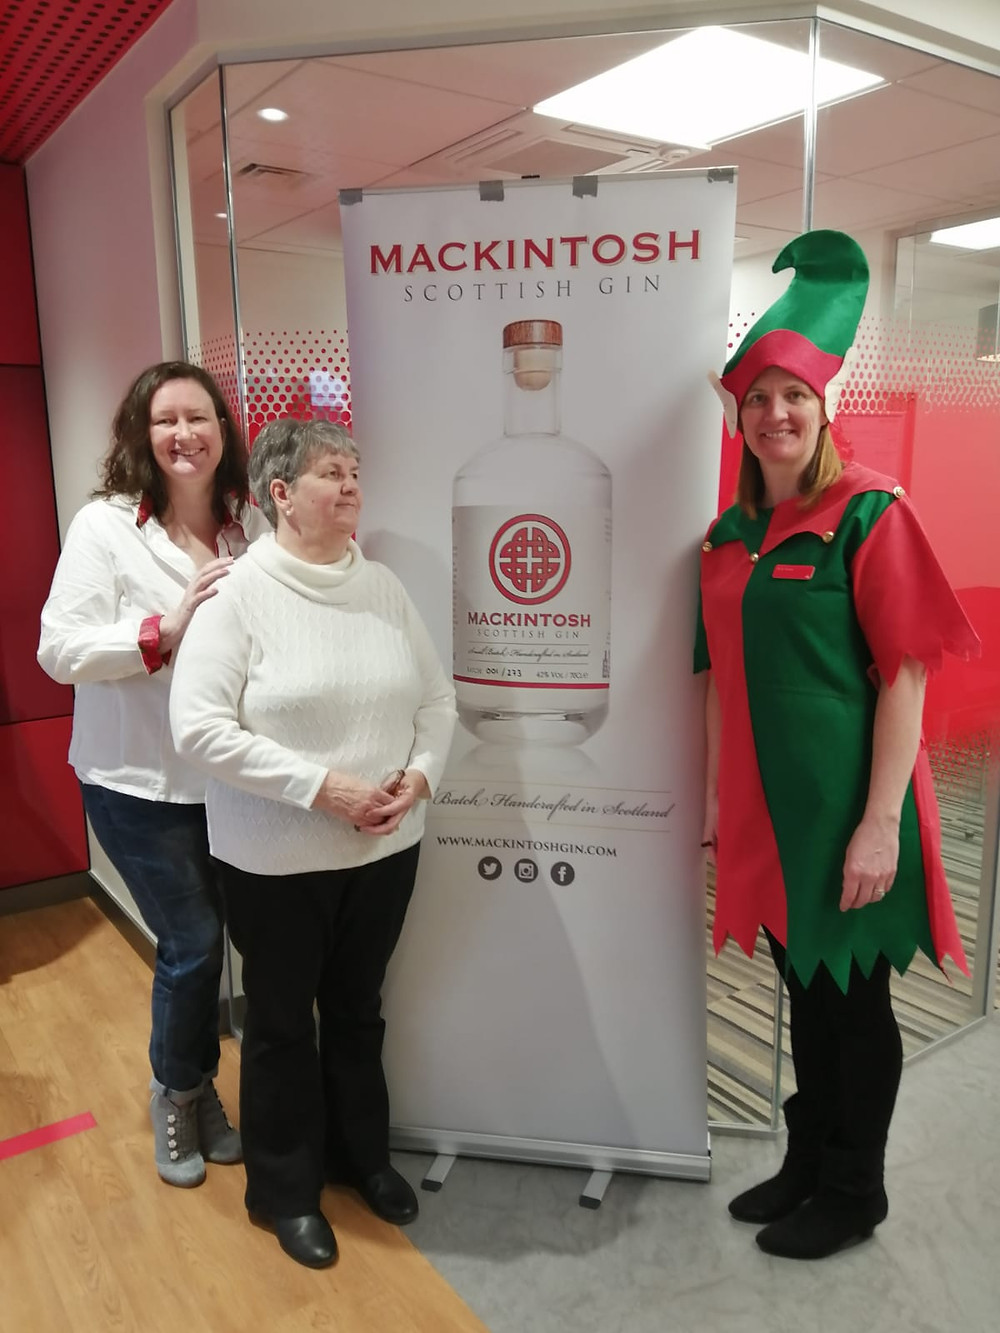 Mackintosh Gin tasting in Glasgow with Deborah, her mum and sister at Santander Bank in Kirkintilloch.